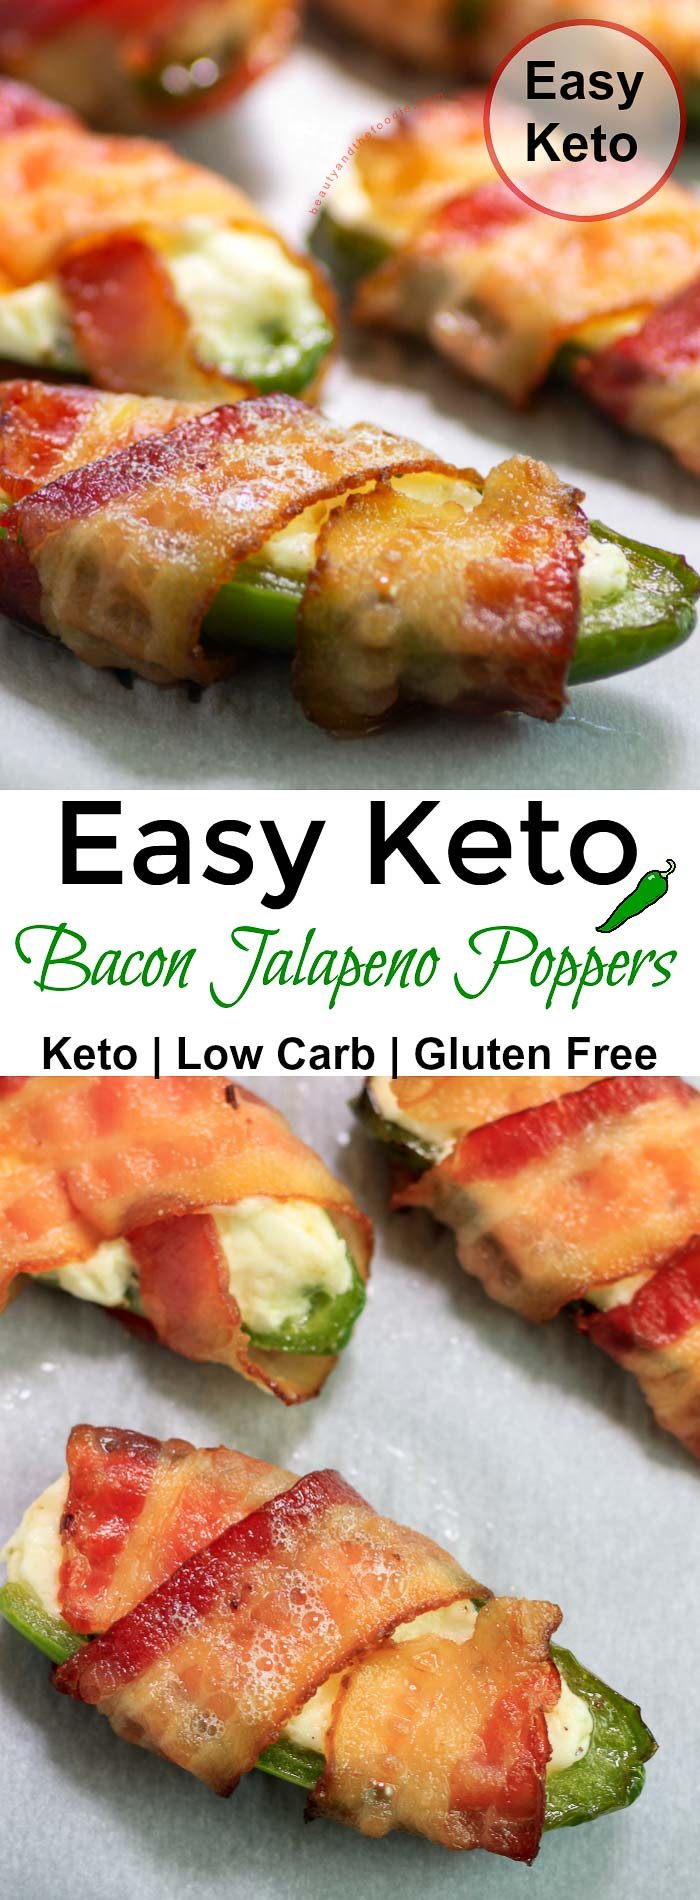 Easy Keto Bacon Jalapeno Poppers